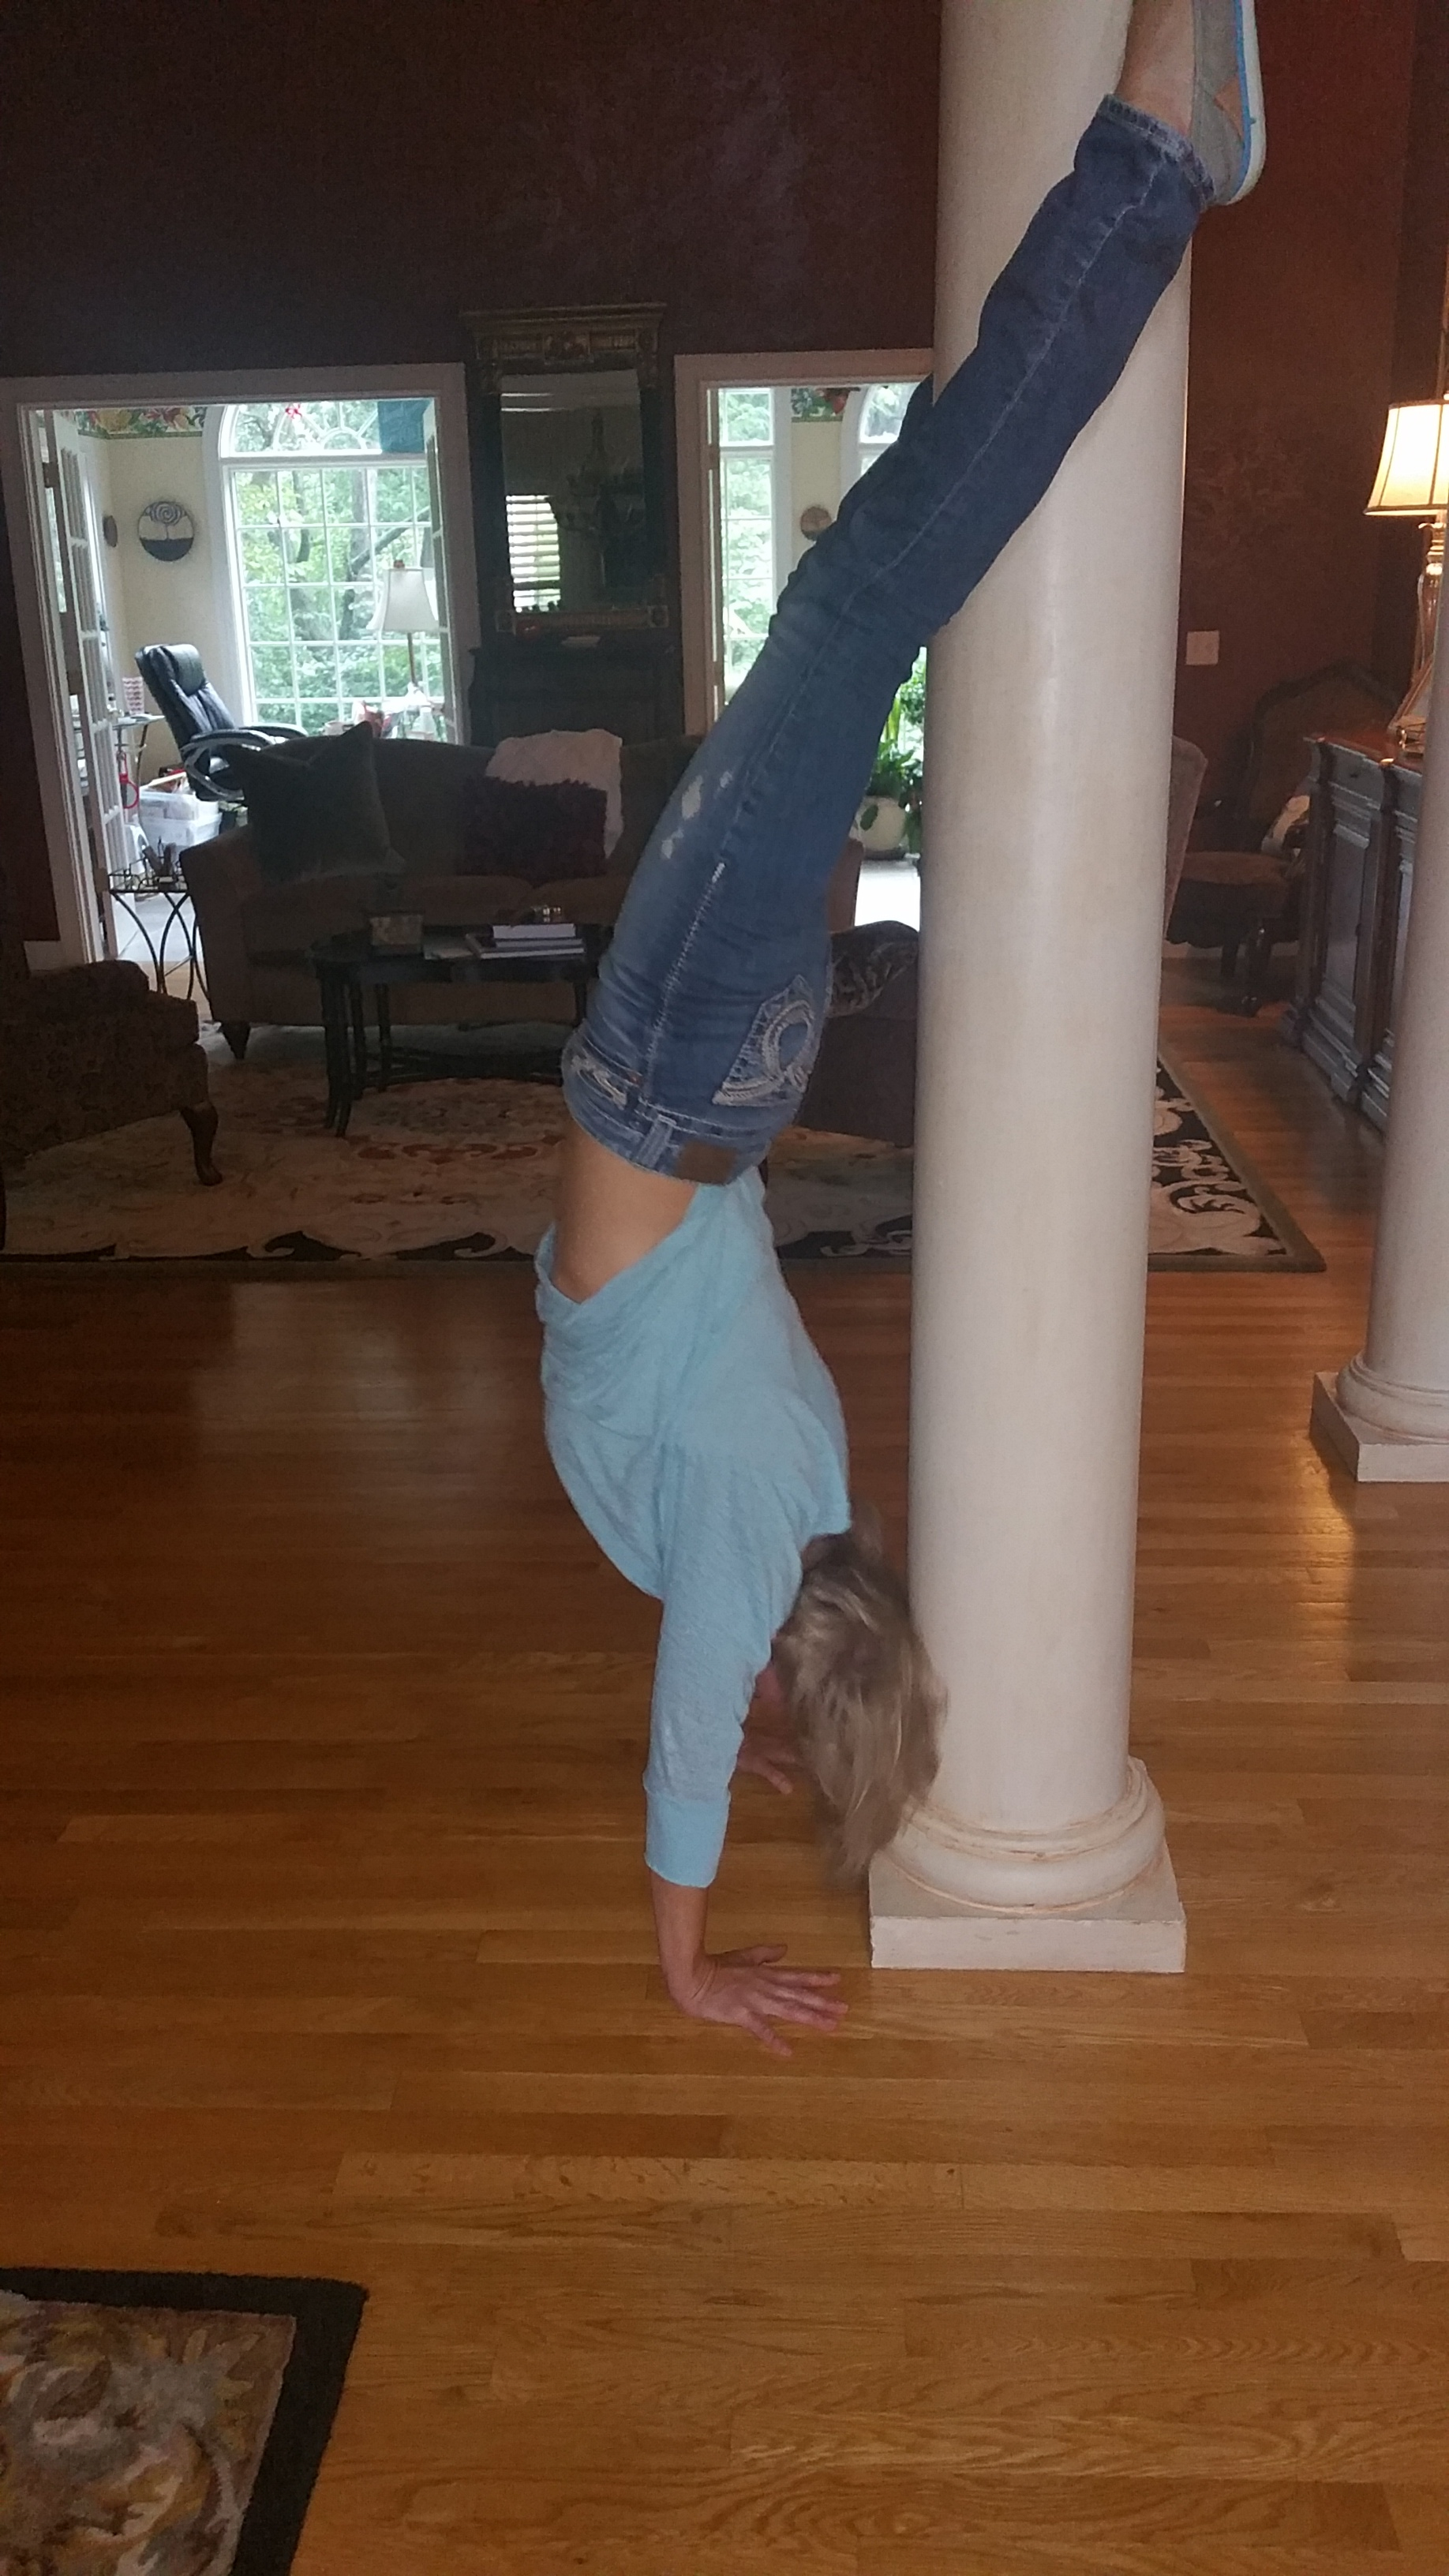 I go upside down to get right inside . . .